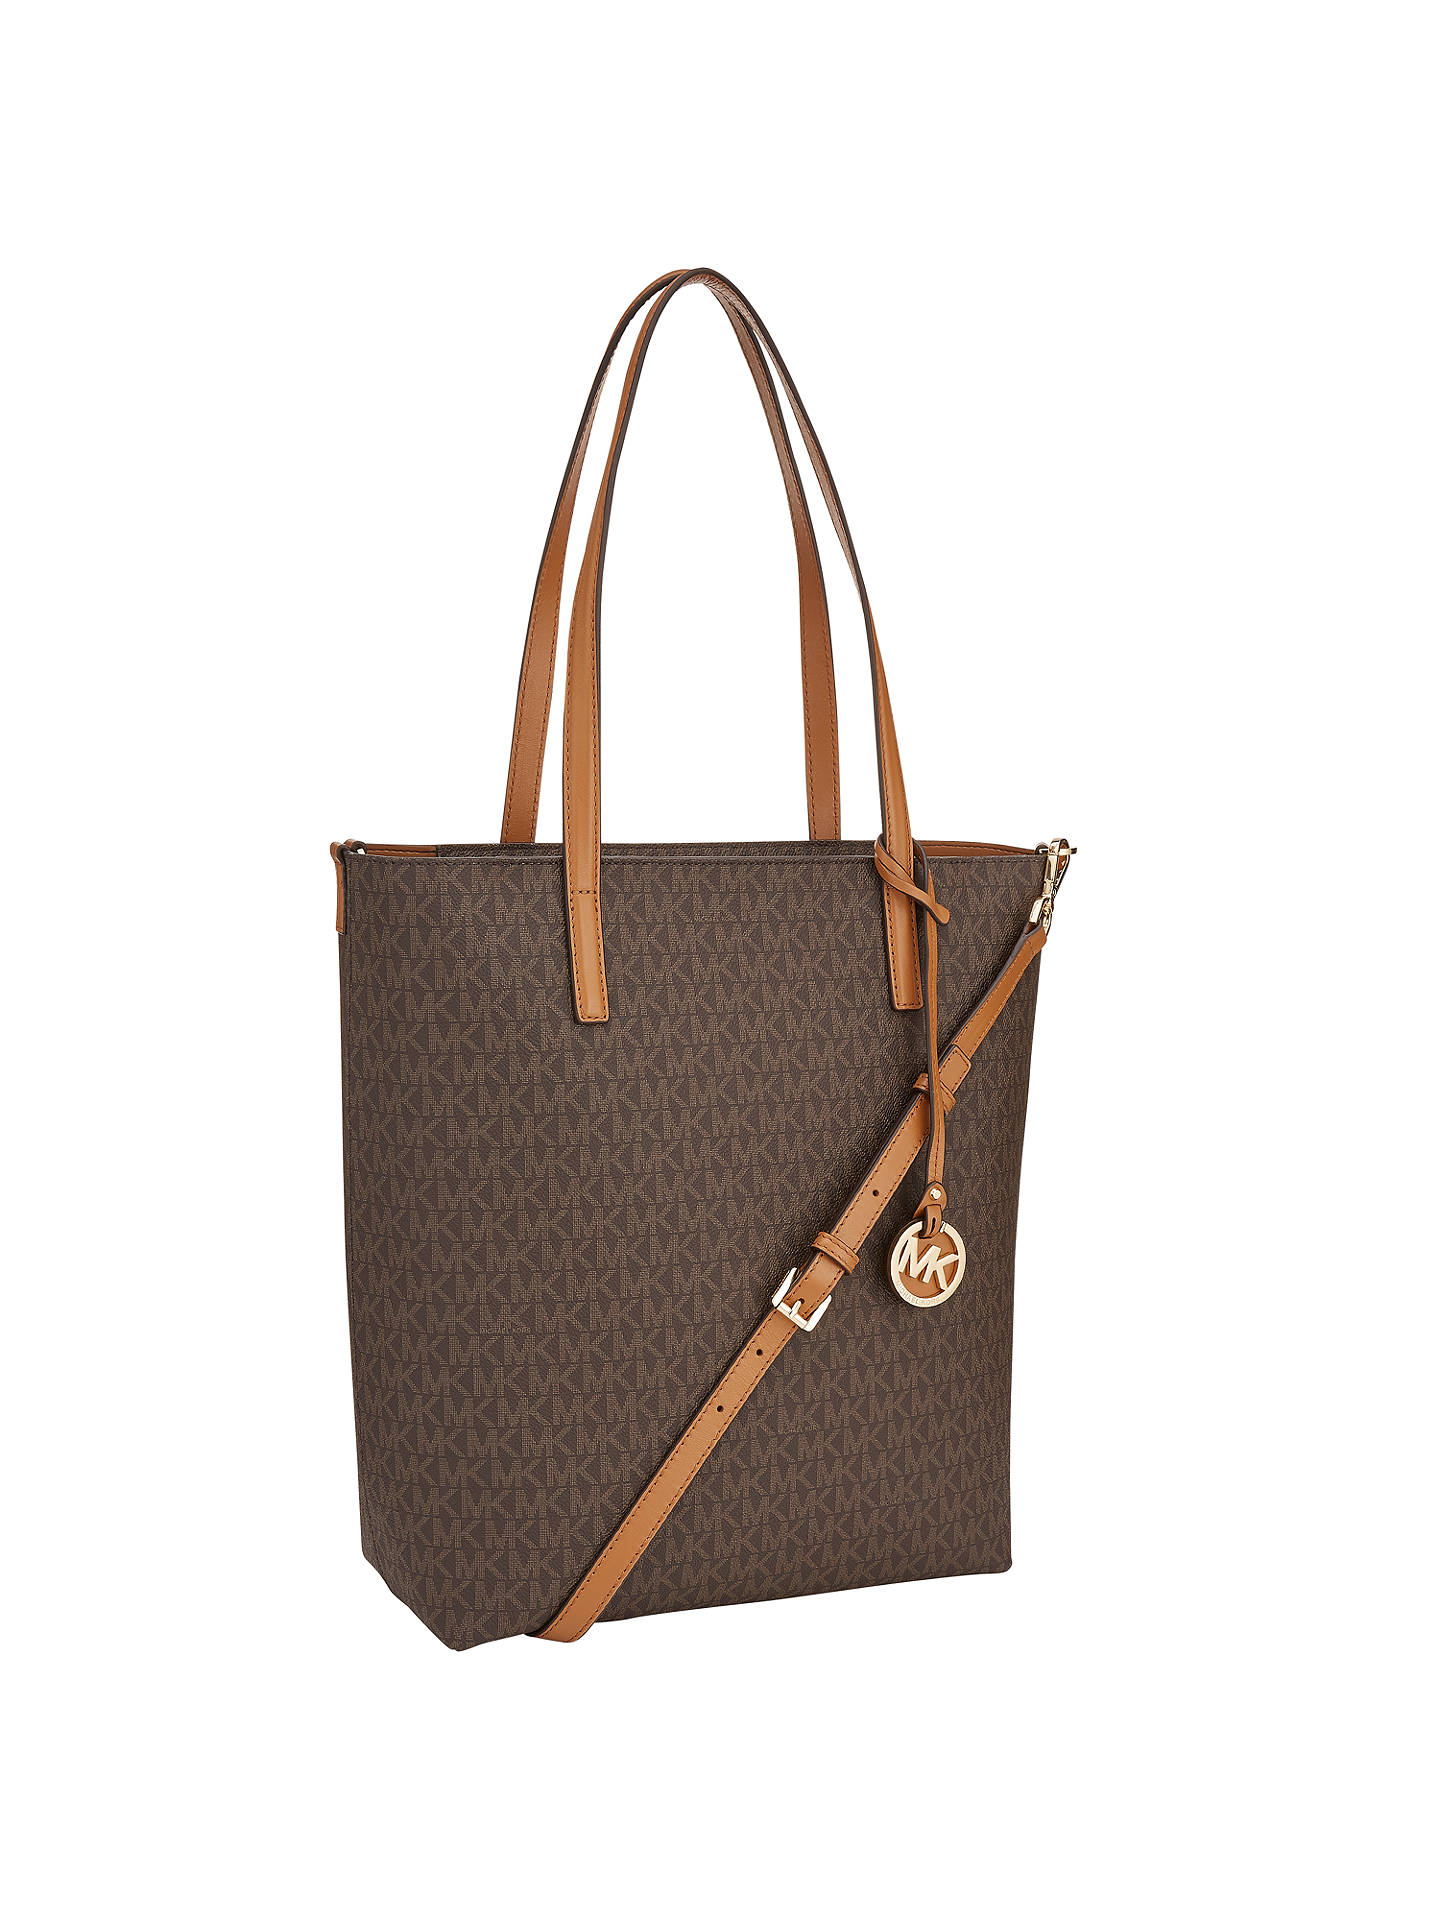 c1beacf7b40821 ... Buy MICHAEL Michael Kors Hayley Large Leather North / South Tote Bag,  Brown / Acorn